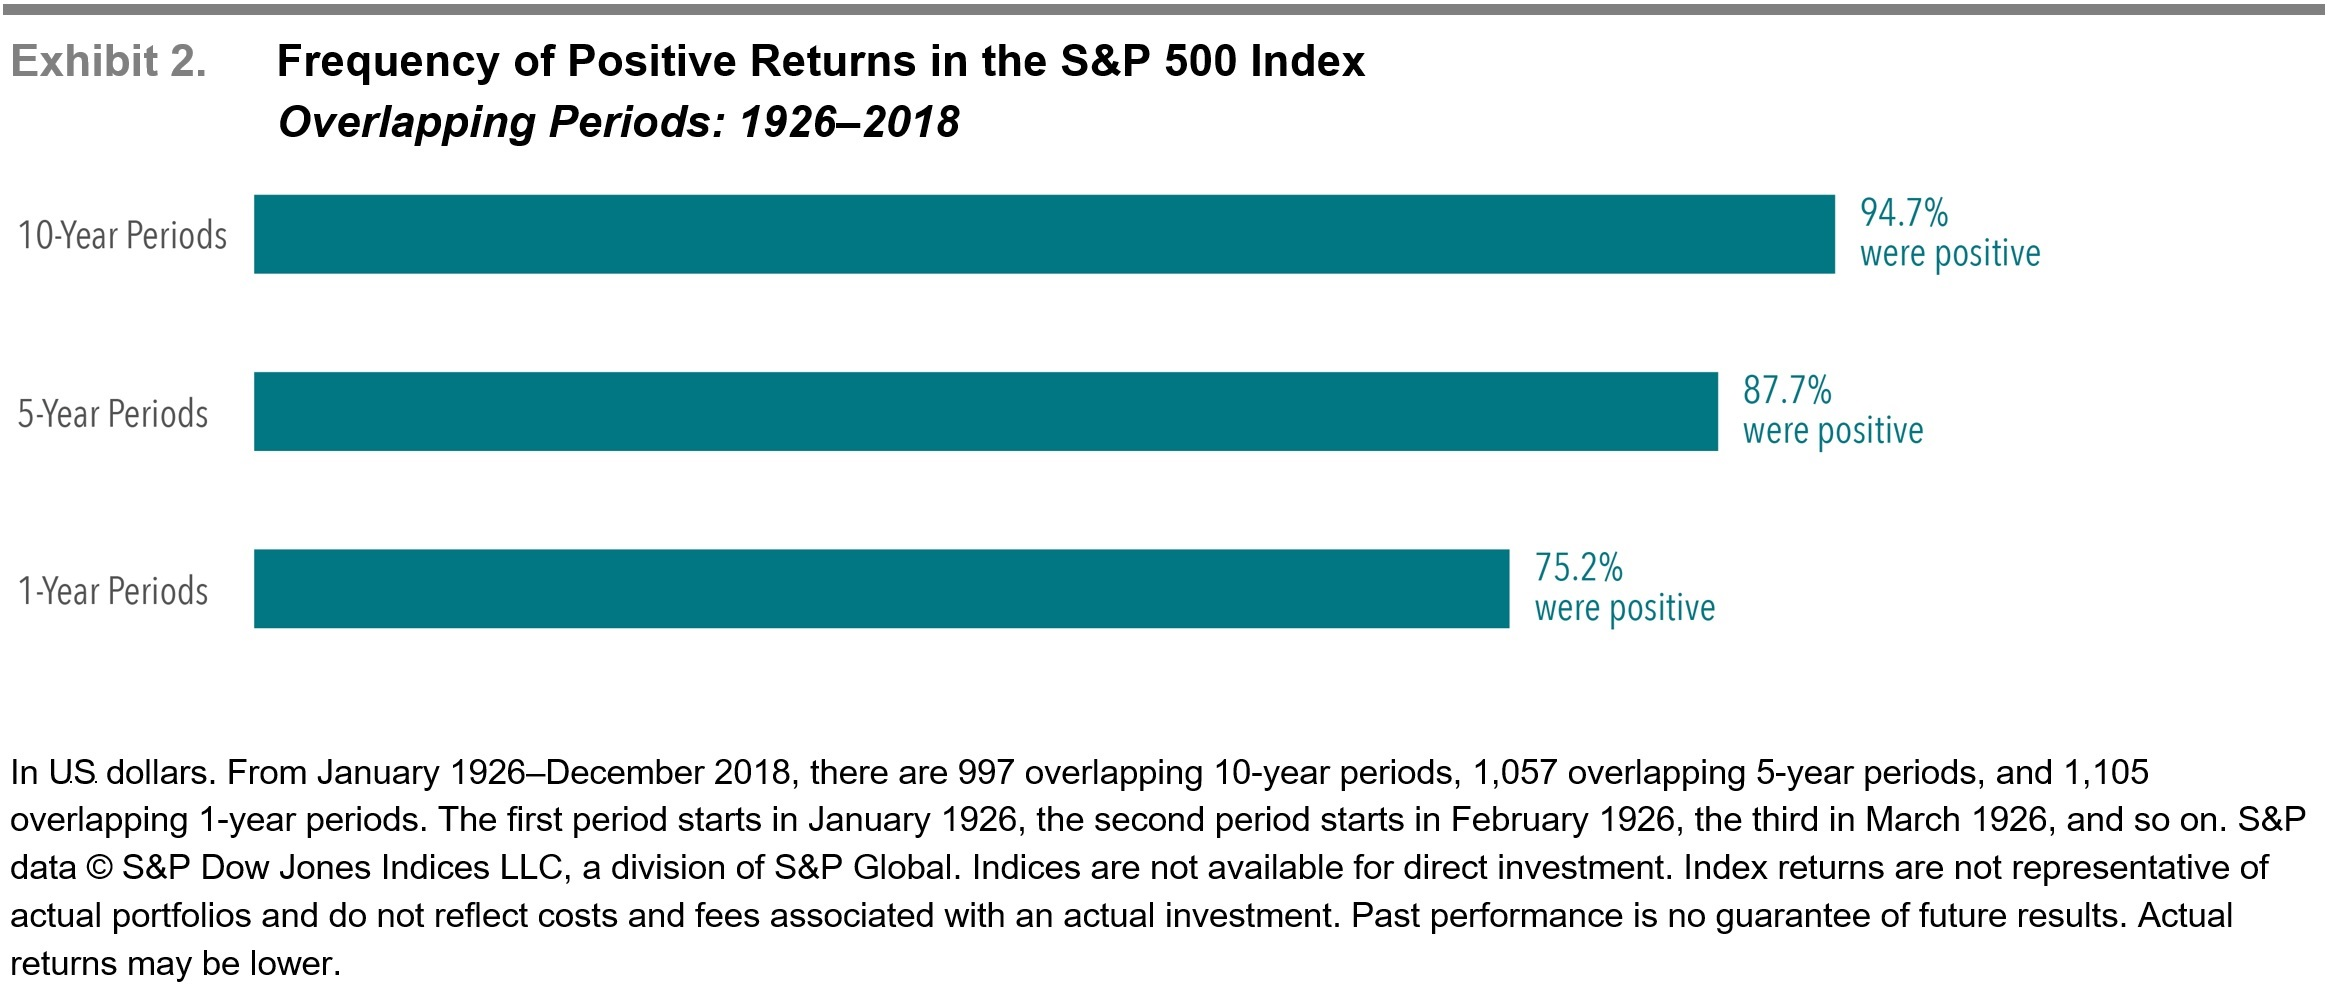 Uncommon Average Frequency of Positive Returns in the S&P 500 Index